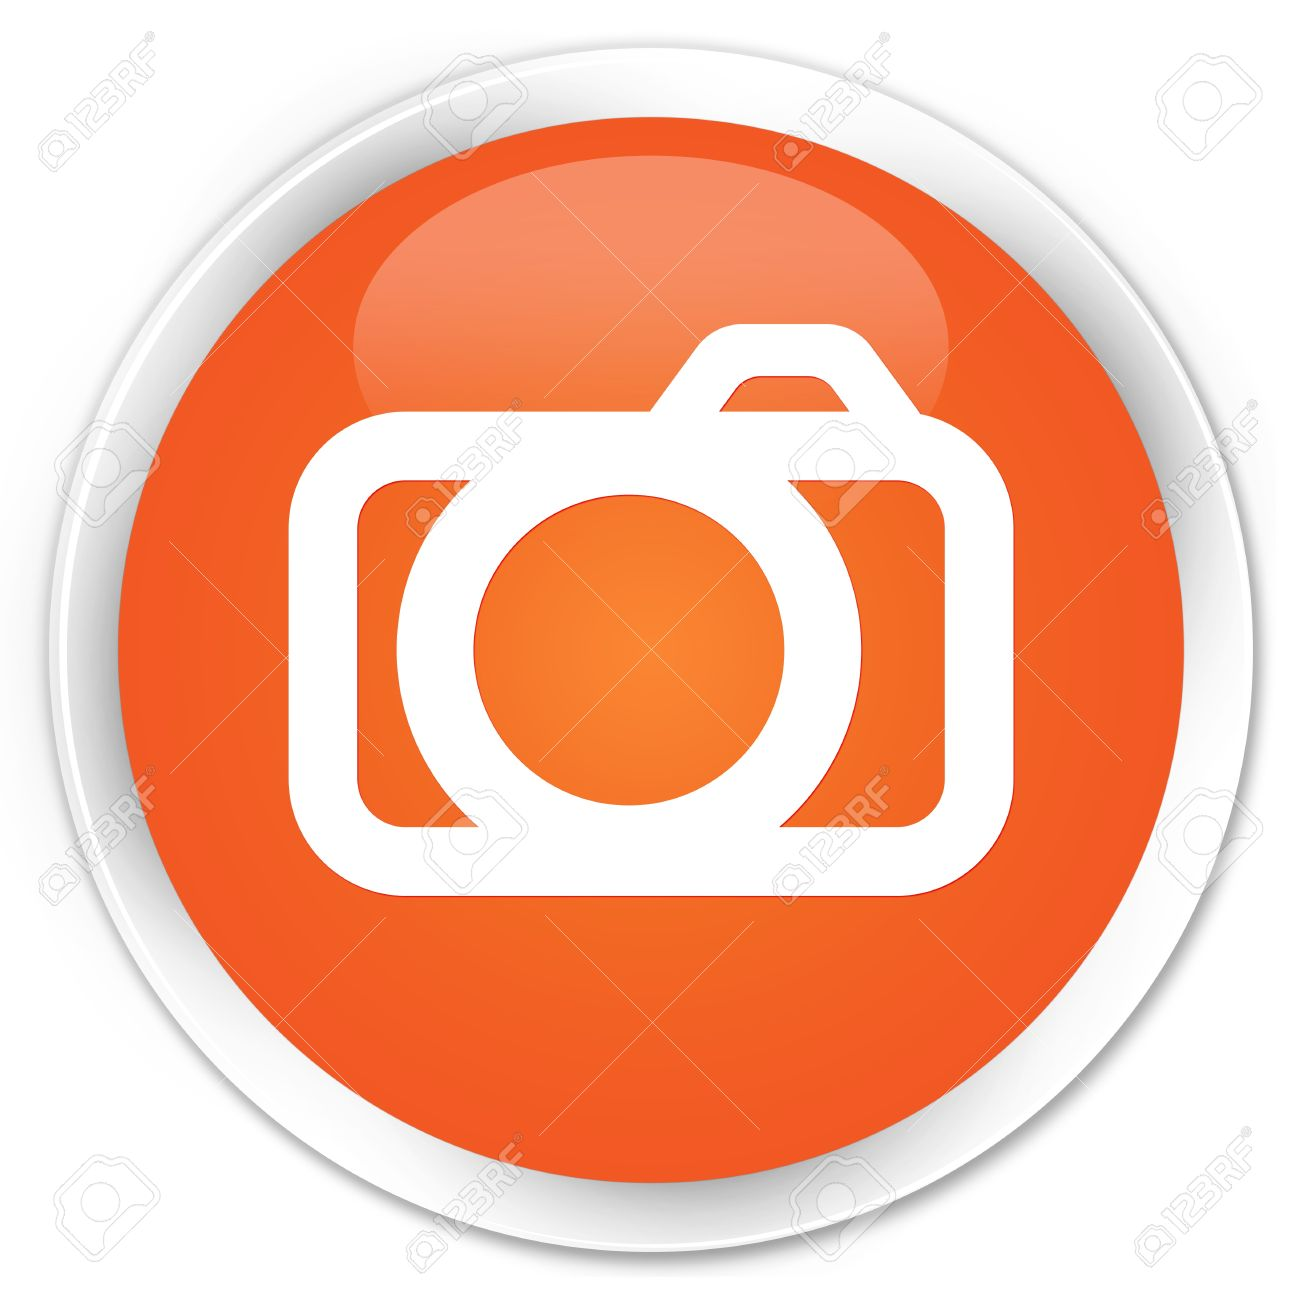 Login Buttons Icons Icon Glossy Orange Button